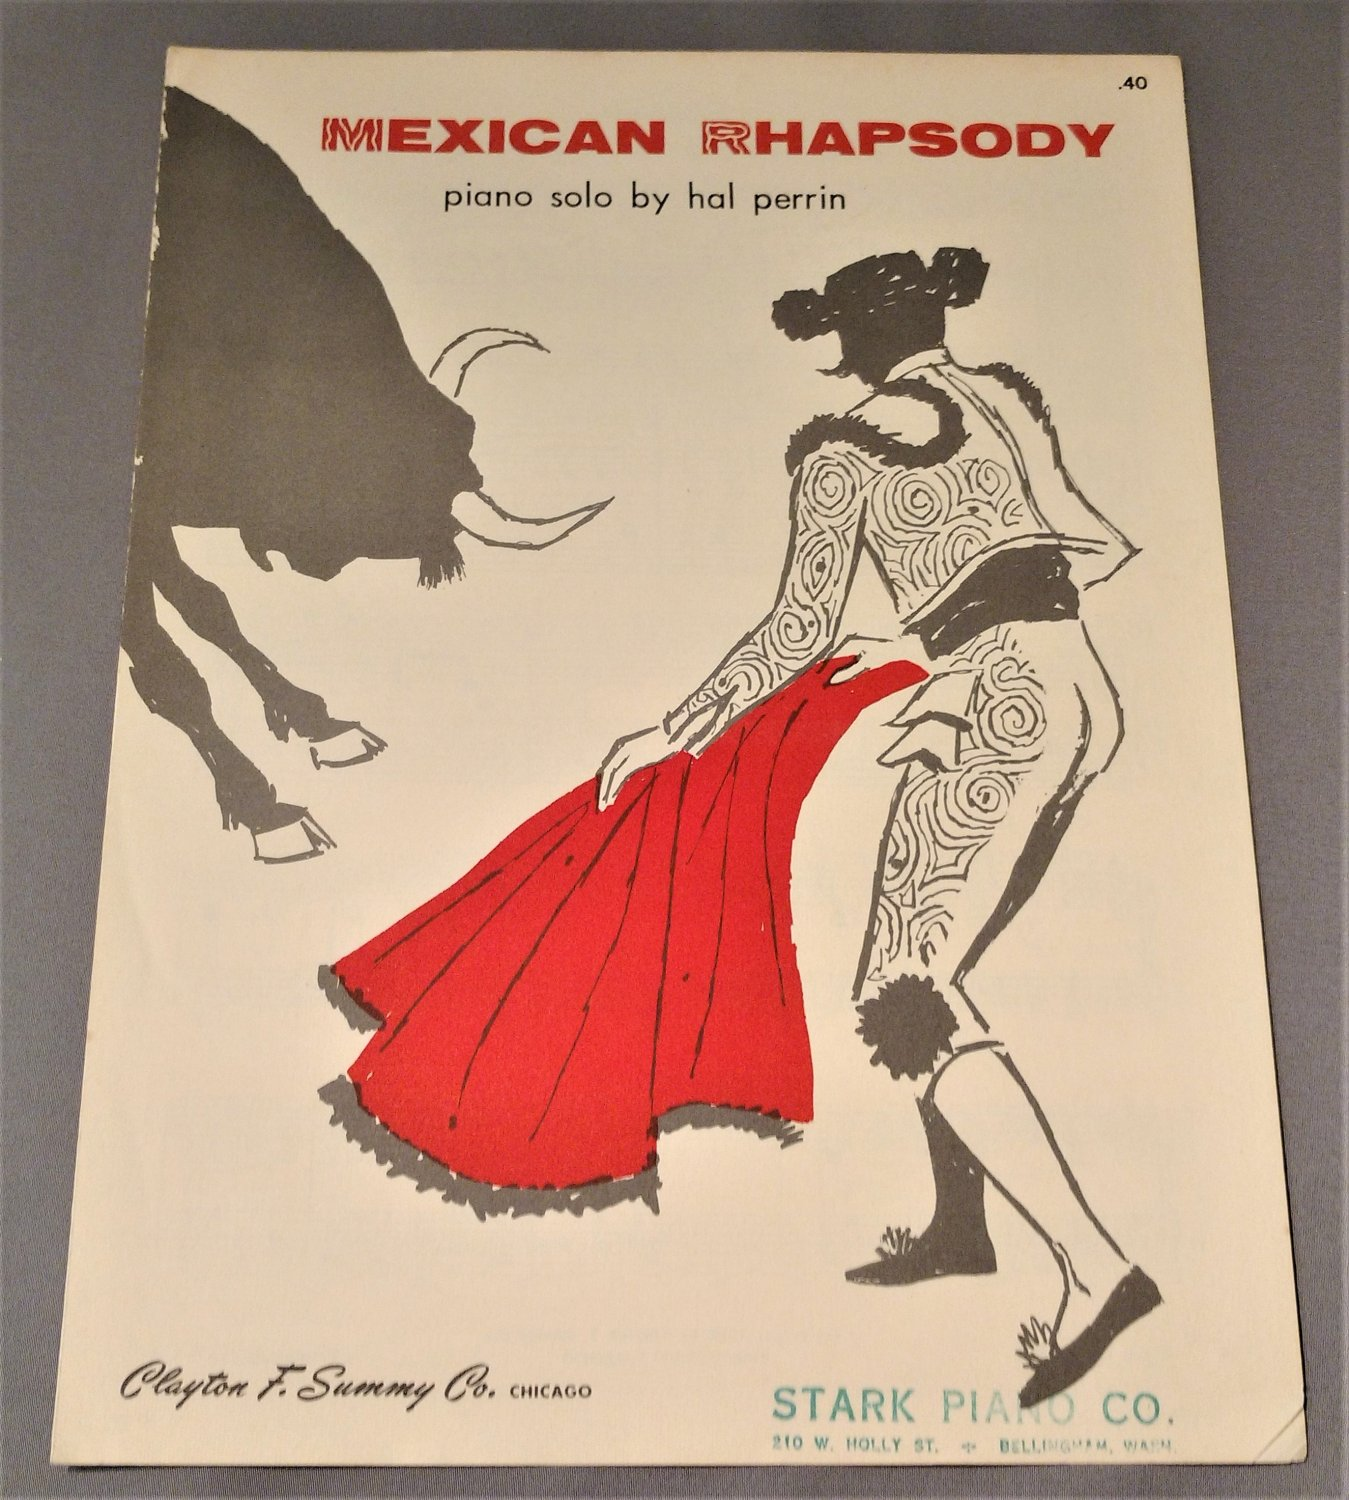 MEXICAN RHAPSODY Piano Solo by Hal Perrin © 1955